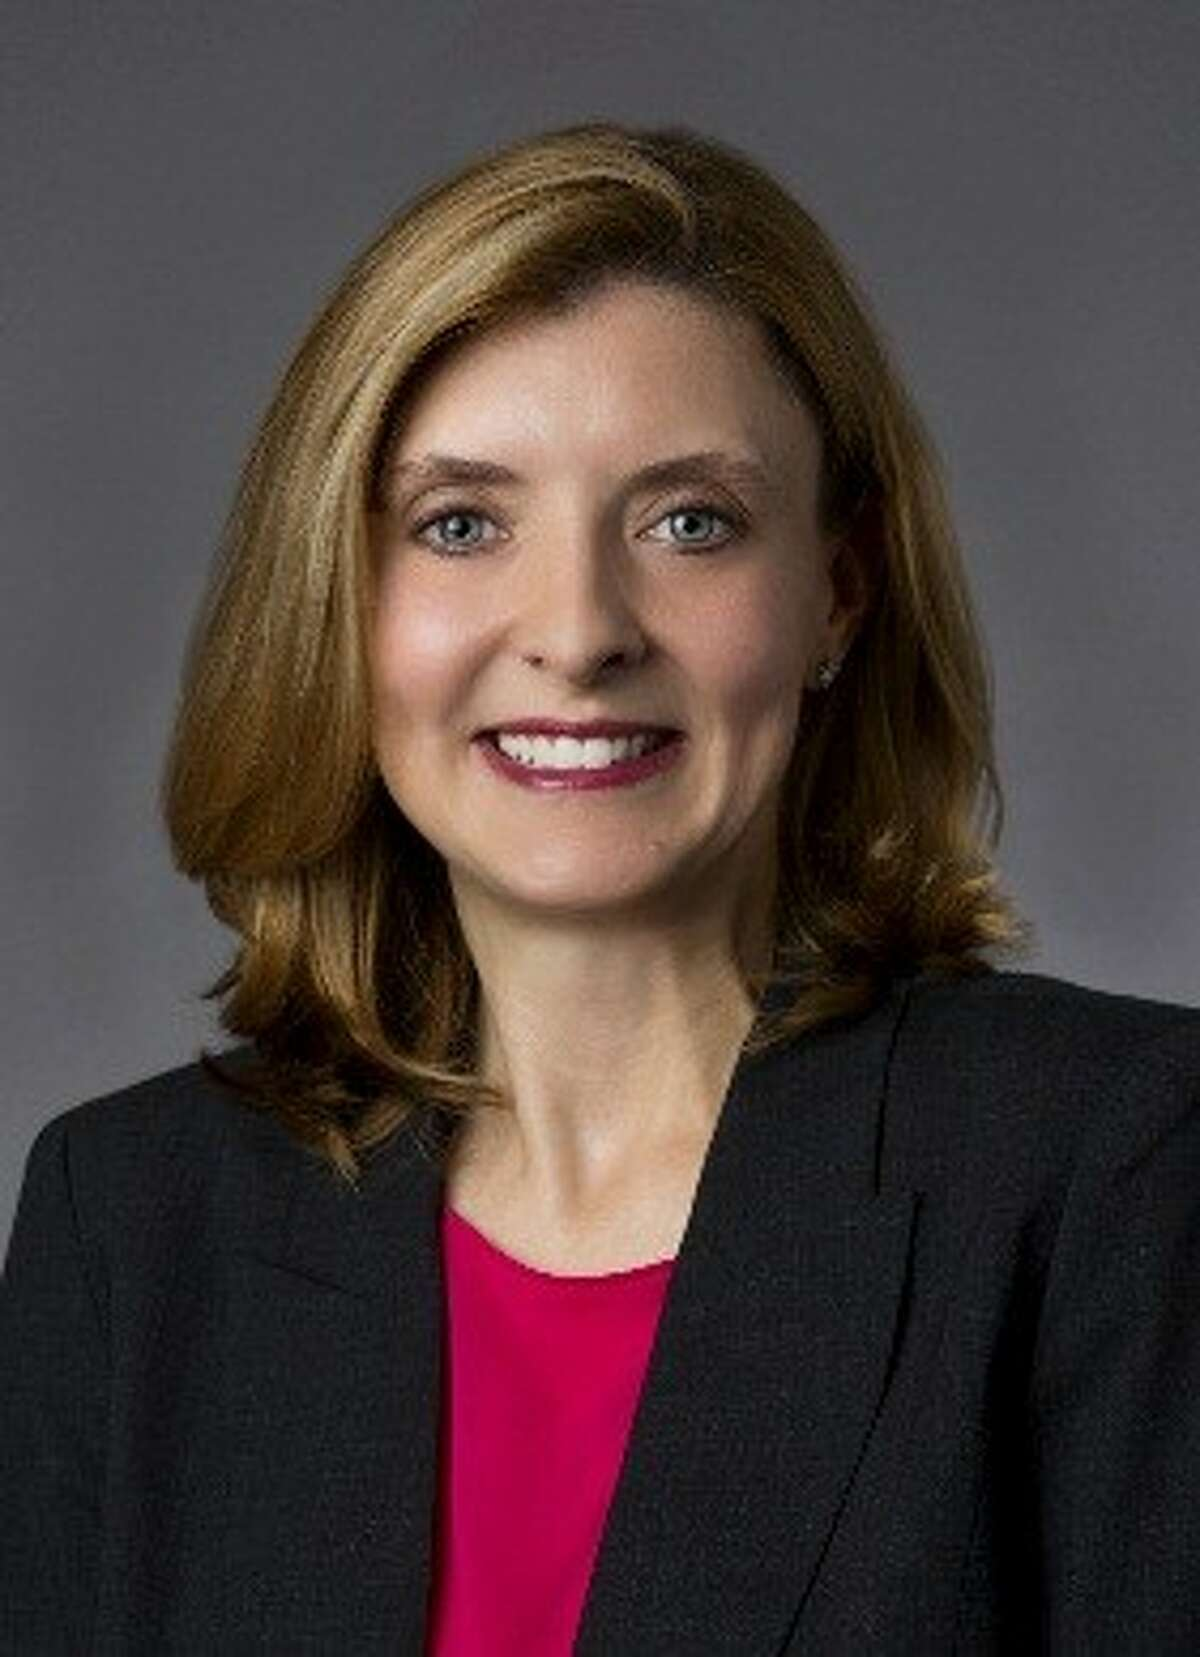 Angie Gildea is KPMG's national sector leader over energy, natural resources and chemicals.